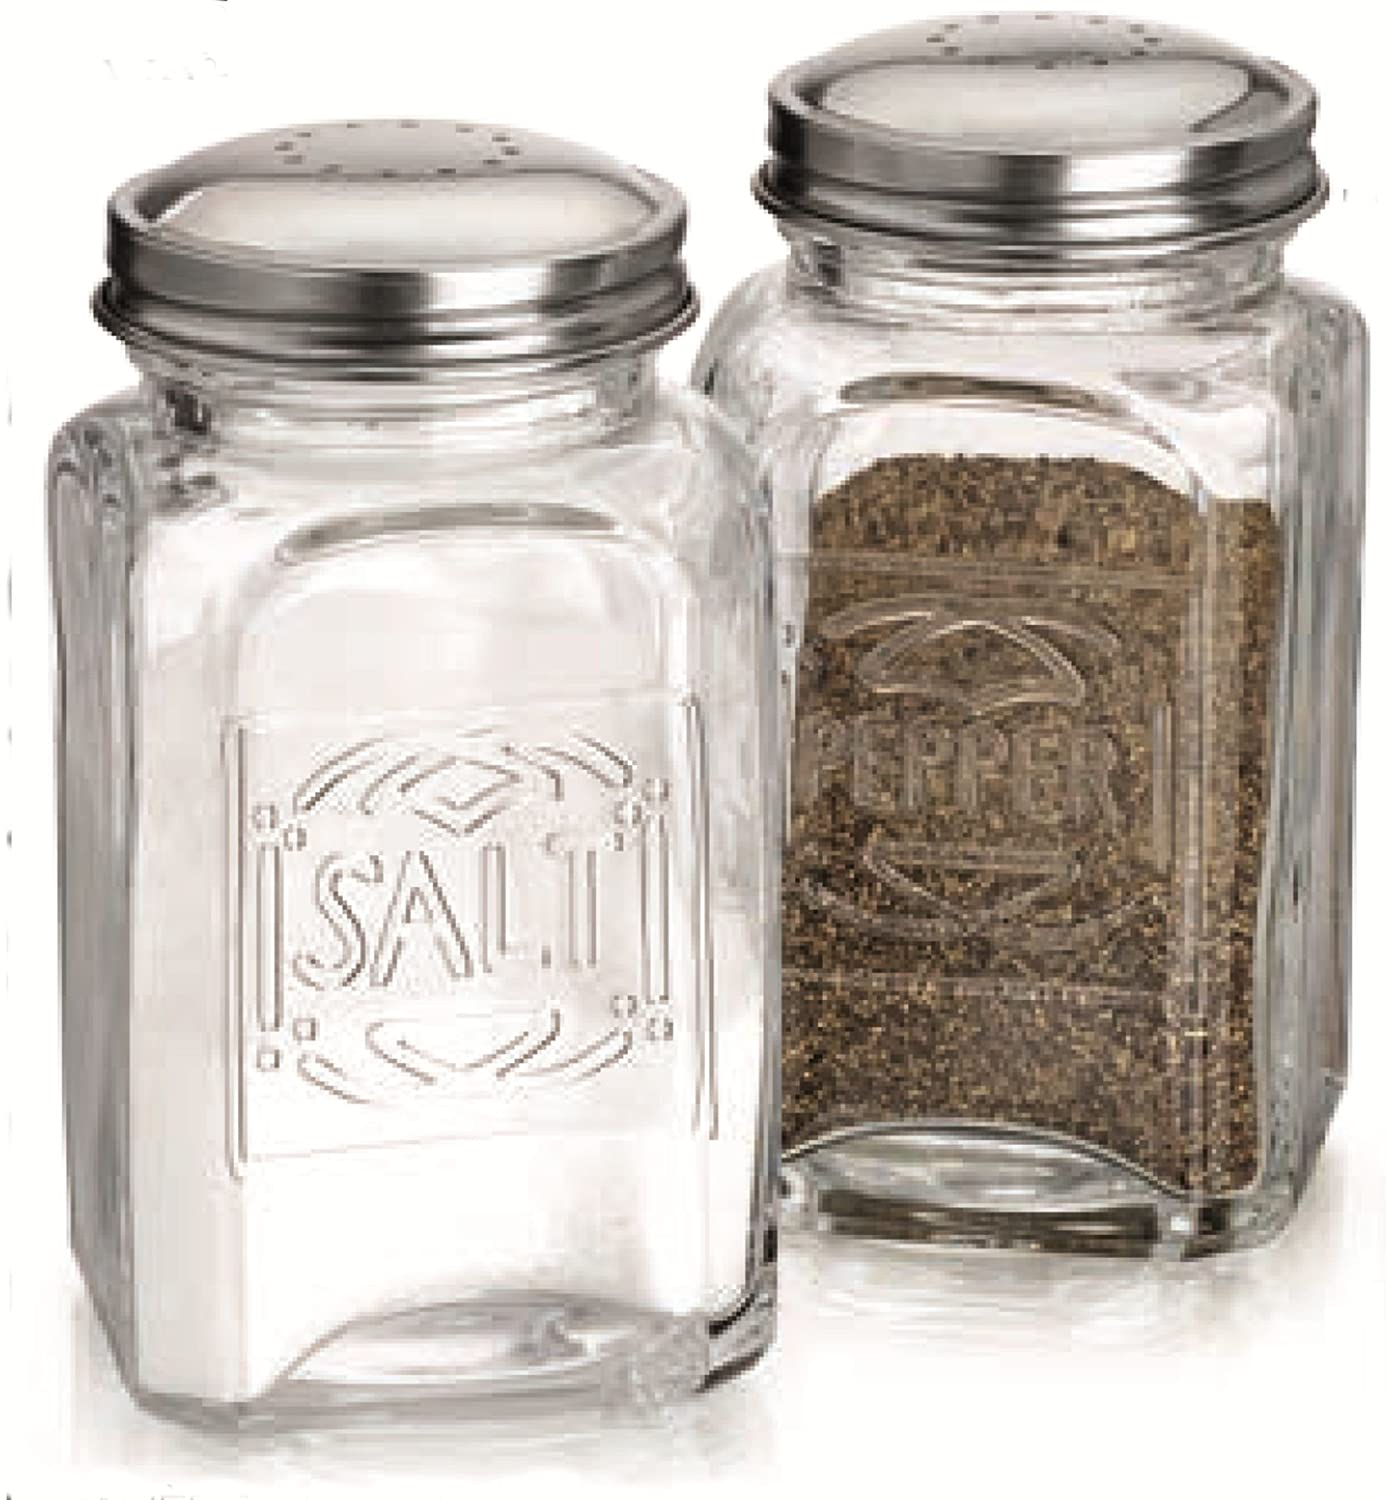 amazoncom home essentials  beyond  lifestyle embossed salt  - amazoncom home essentials  beyond  lifestyle embossed salt  peppershaker kitchen  dining